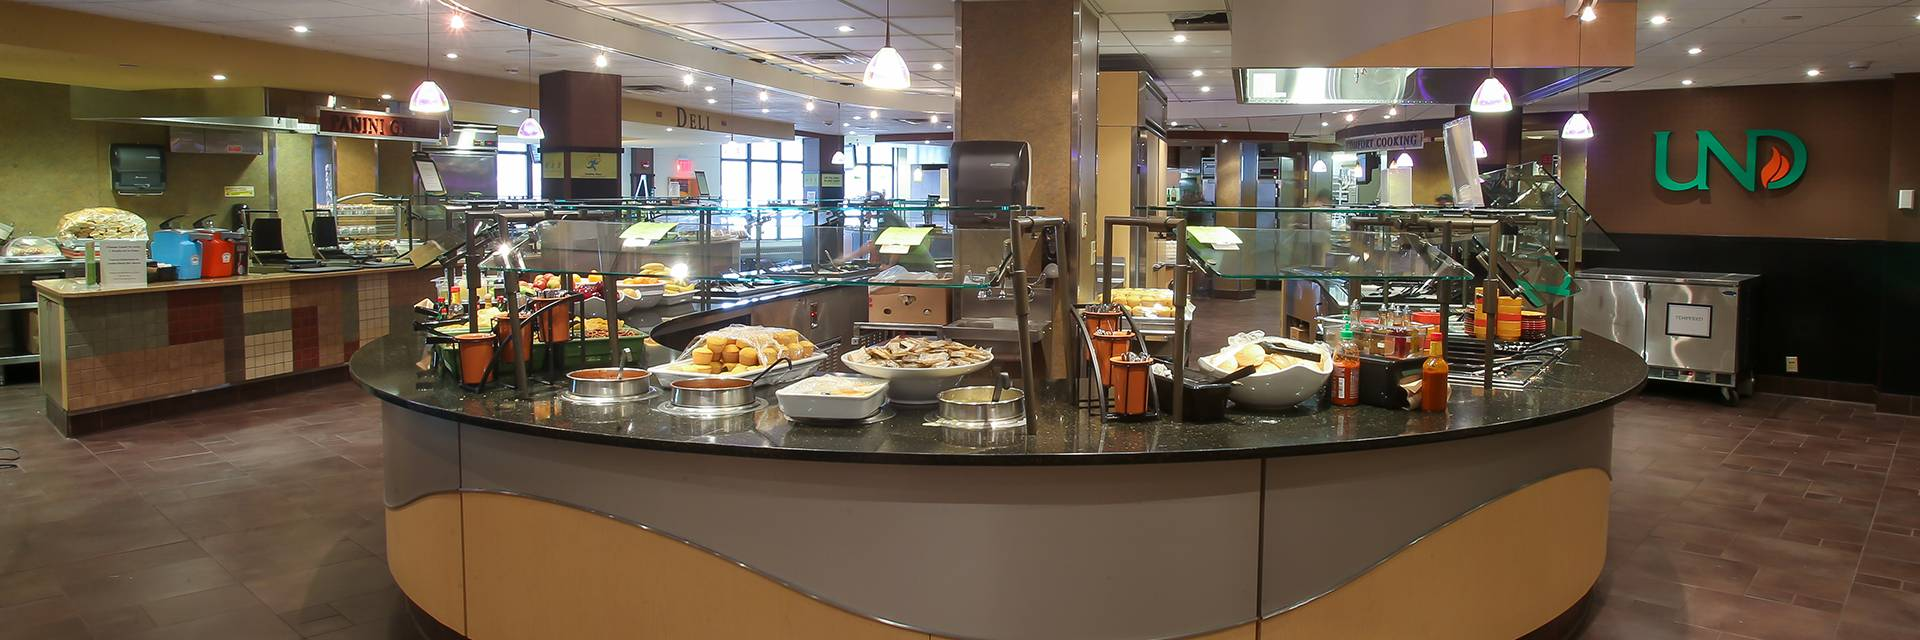 squires dining hall